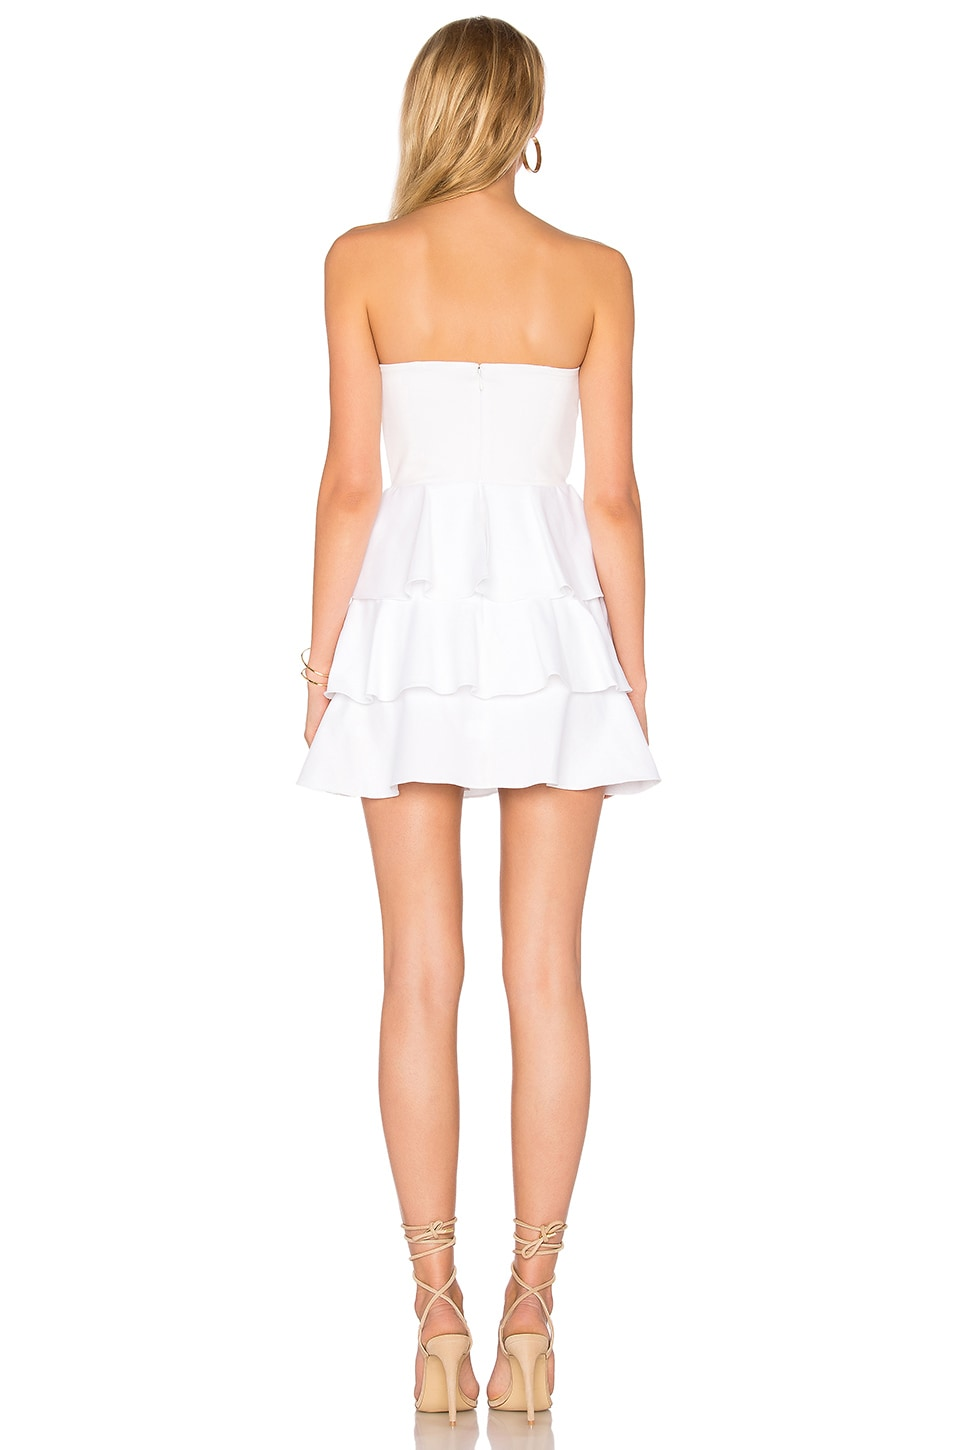 Tiered Ruffle Dress, view 3, click to view large image.